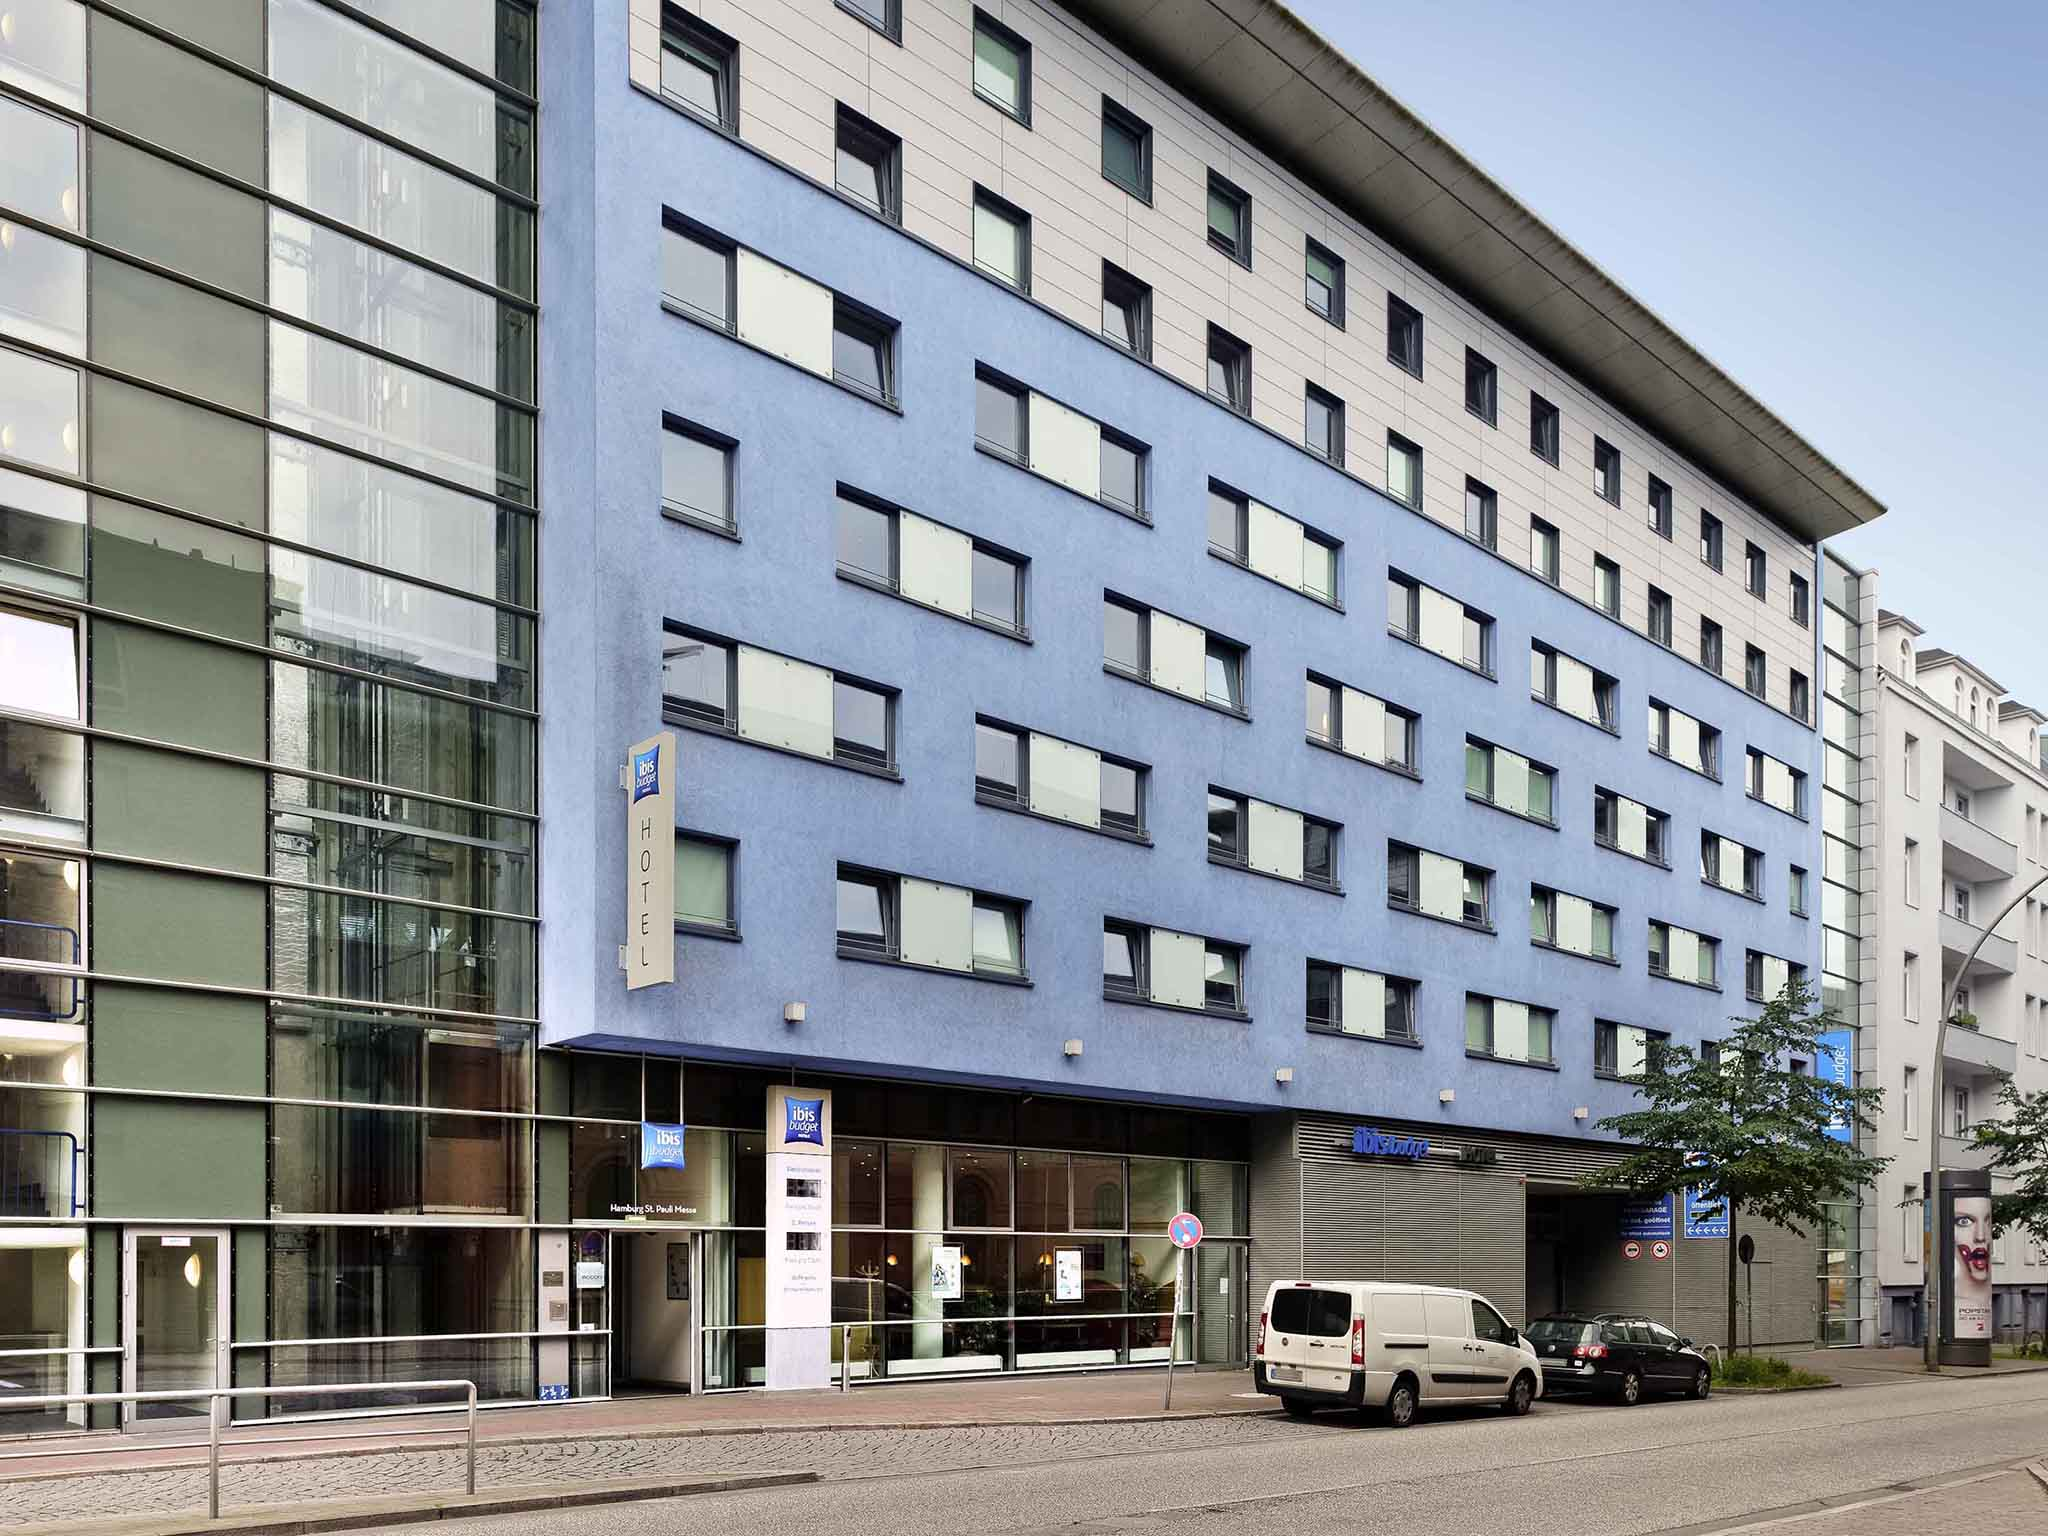 Hotel ibis budget hamburg st pauli messe book now wifi for Hotel hamburg